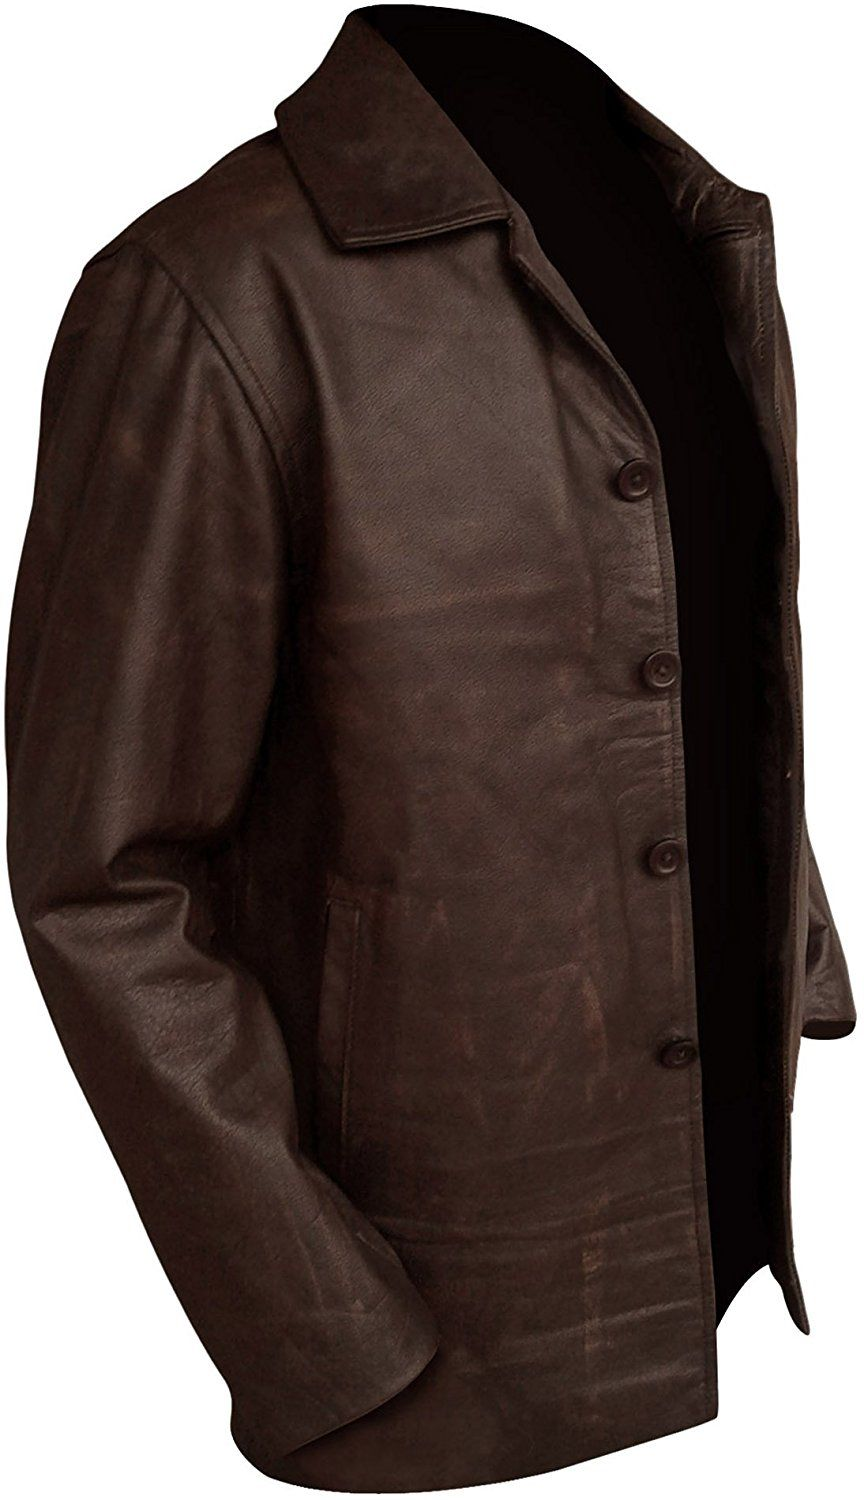 Supernatural Dean Winchester Jacket Distressed Real Leather Best Price Offer At Amazon Men S Clothing Store Jackets Real Leather Jacket Brown Jacket [ 1500 x 864 Pixel ]